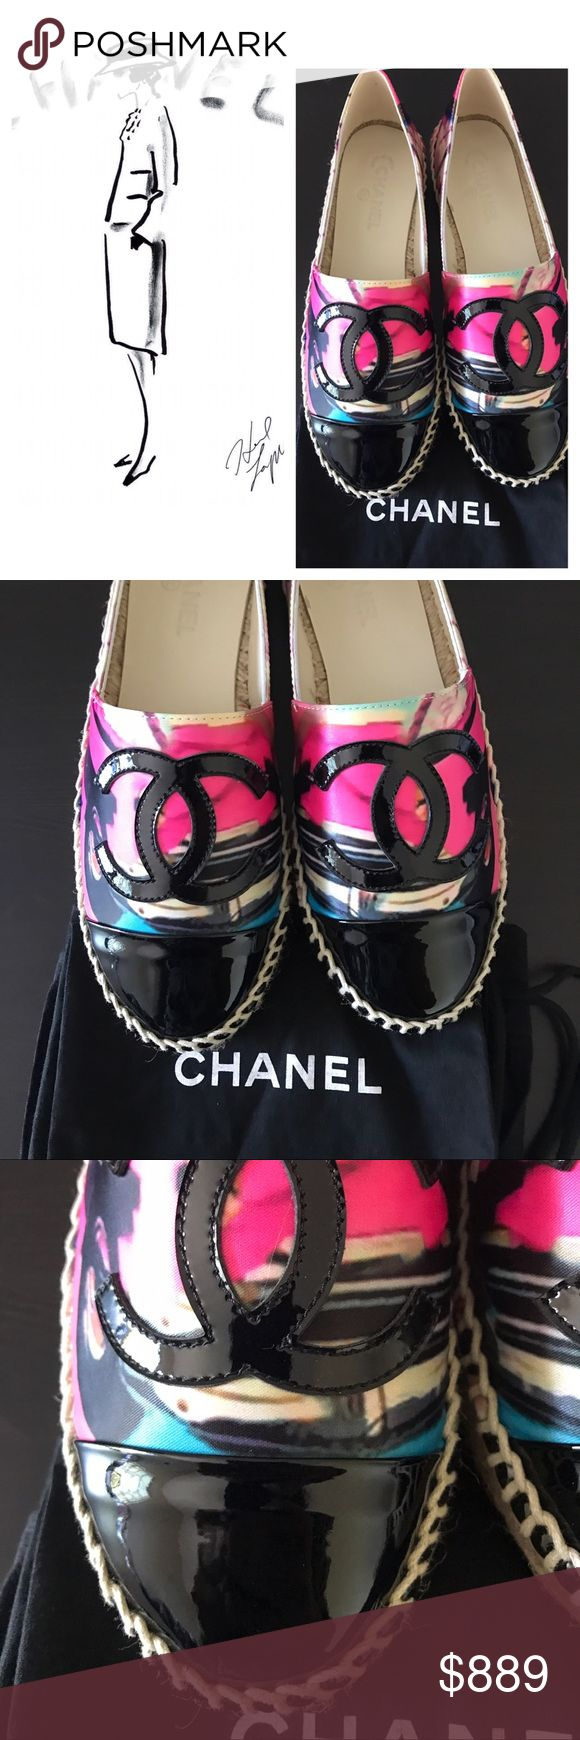 Chanel Cruise Series Espadrilles New Chanel Cruise Pink fabric and black patent leather Espadrilles. Size 37. Made in Spain. Great for a summer time. Cute and bright colors! Comes with 2 Chanel dust bags. NO Box. 🍭Price firm here.✅Price lower on our site👆Check my profile.💄 CHANEL Shoes Espadrilles